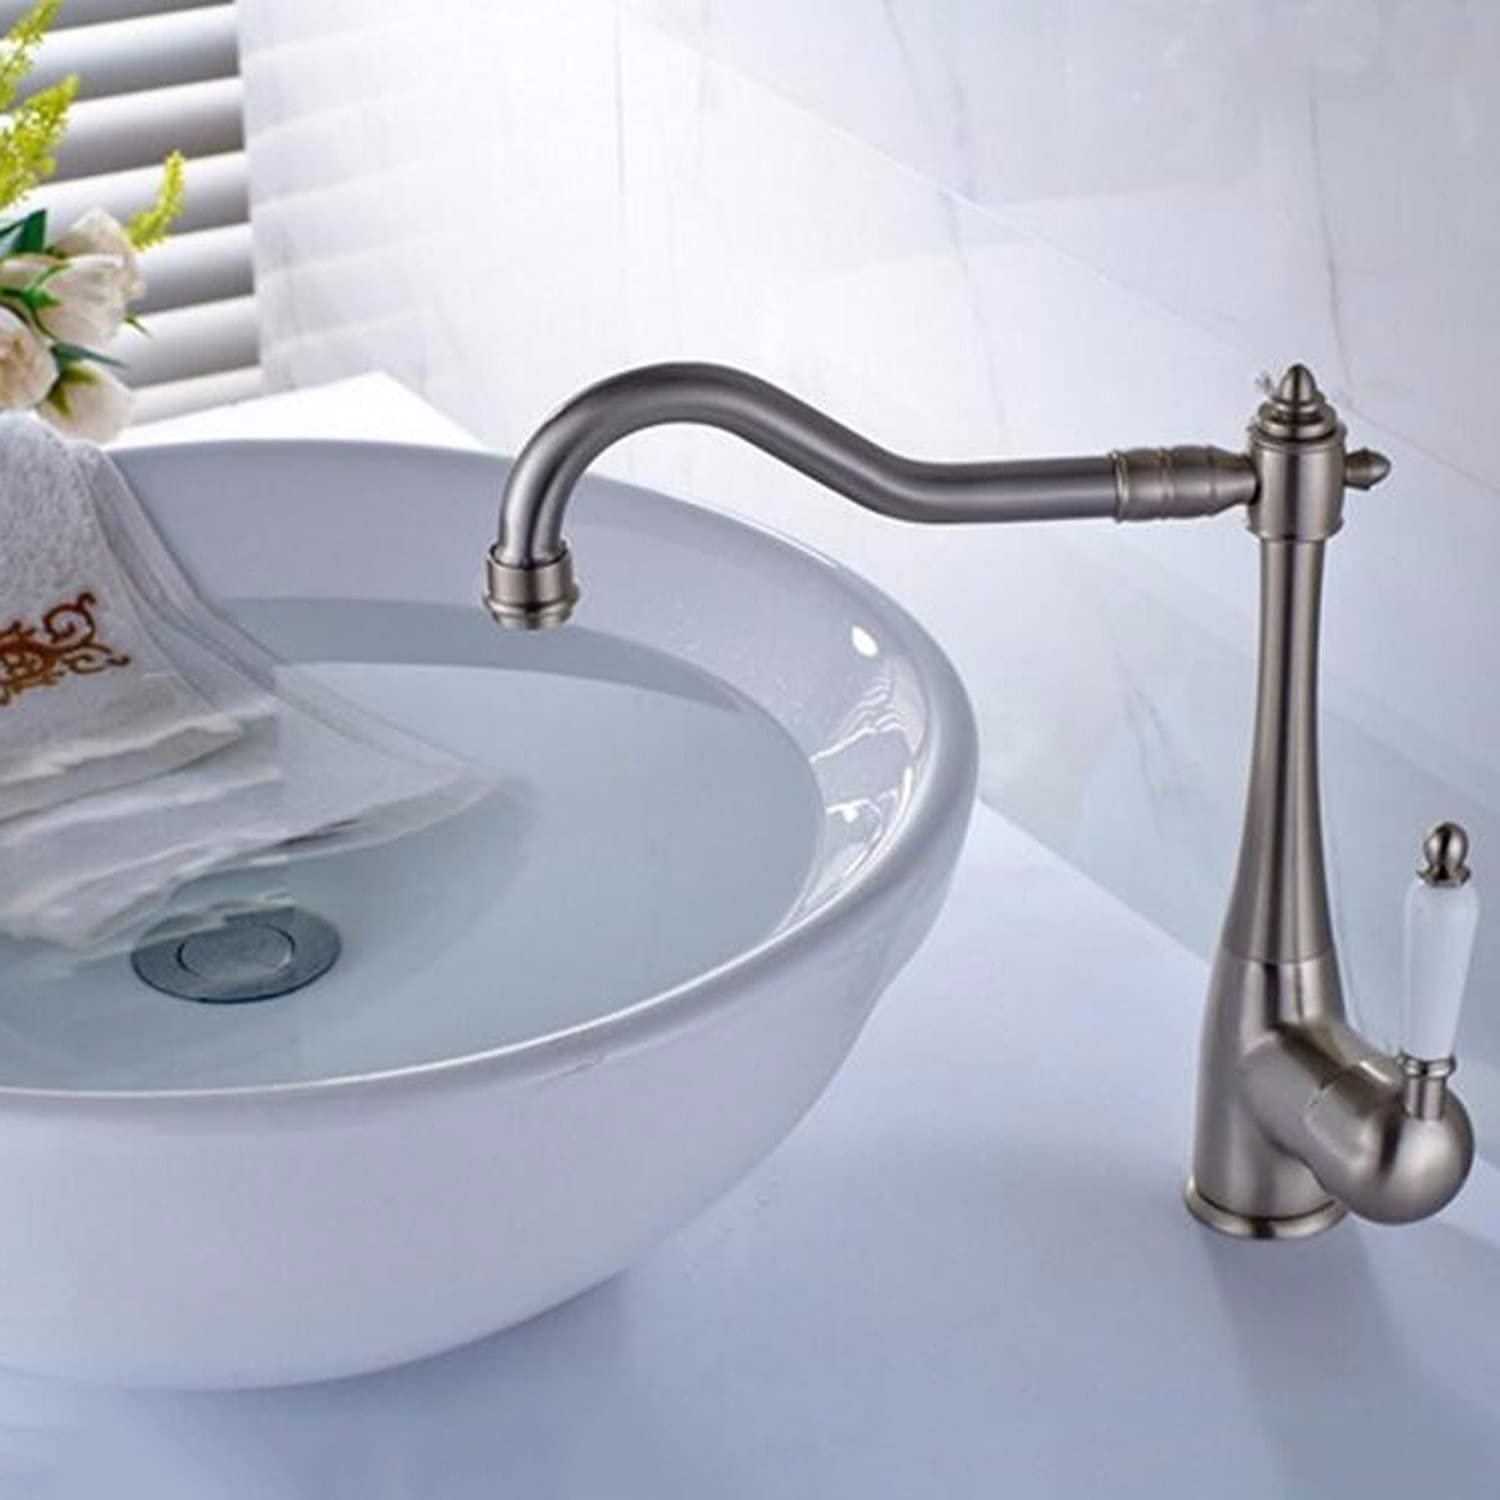 Faucet Full Copper Wire Drawing Single Hole Hot Water Faucet European Retro Face Basin Faucet